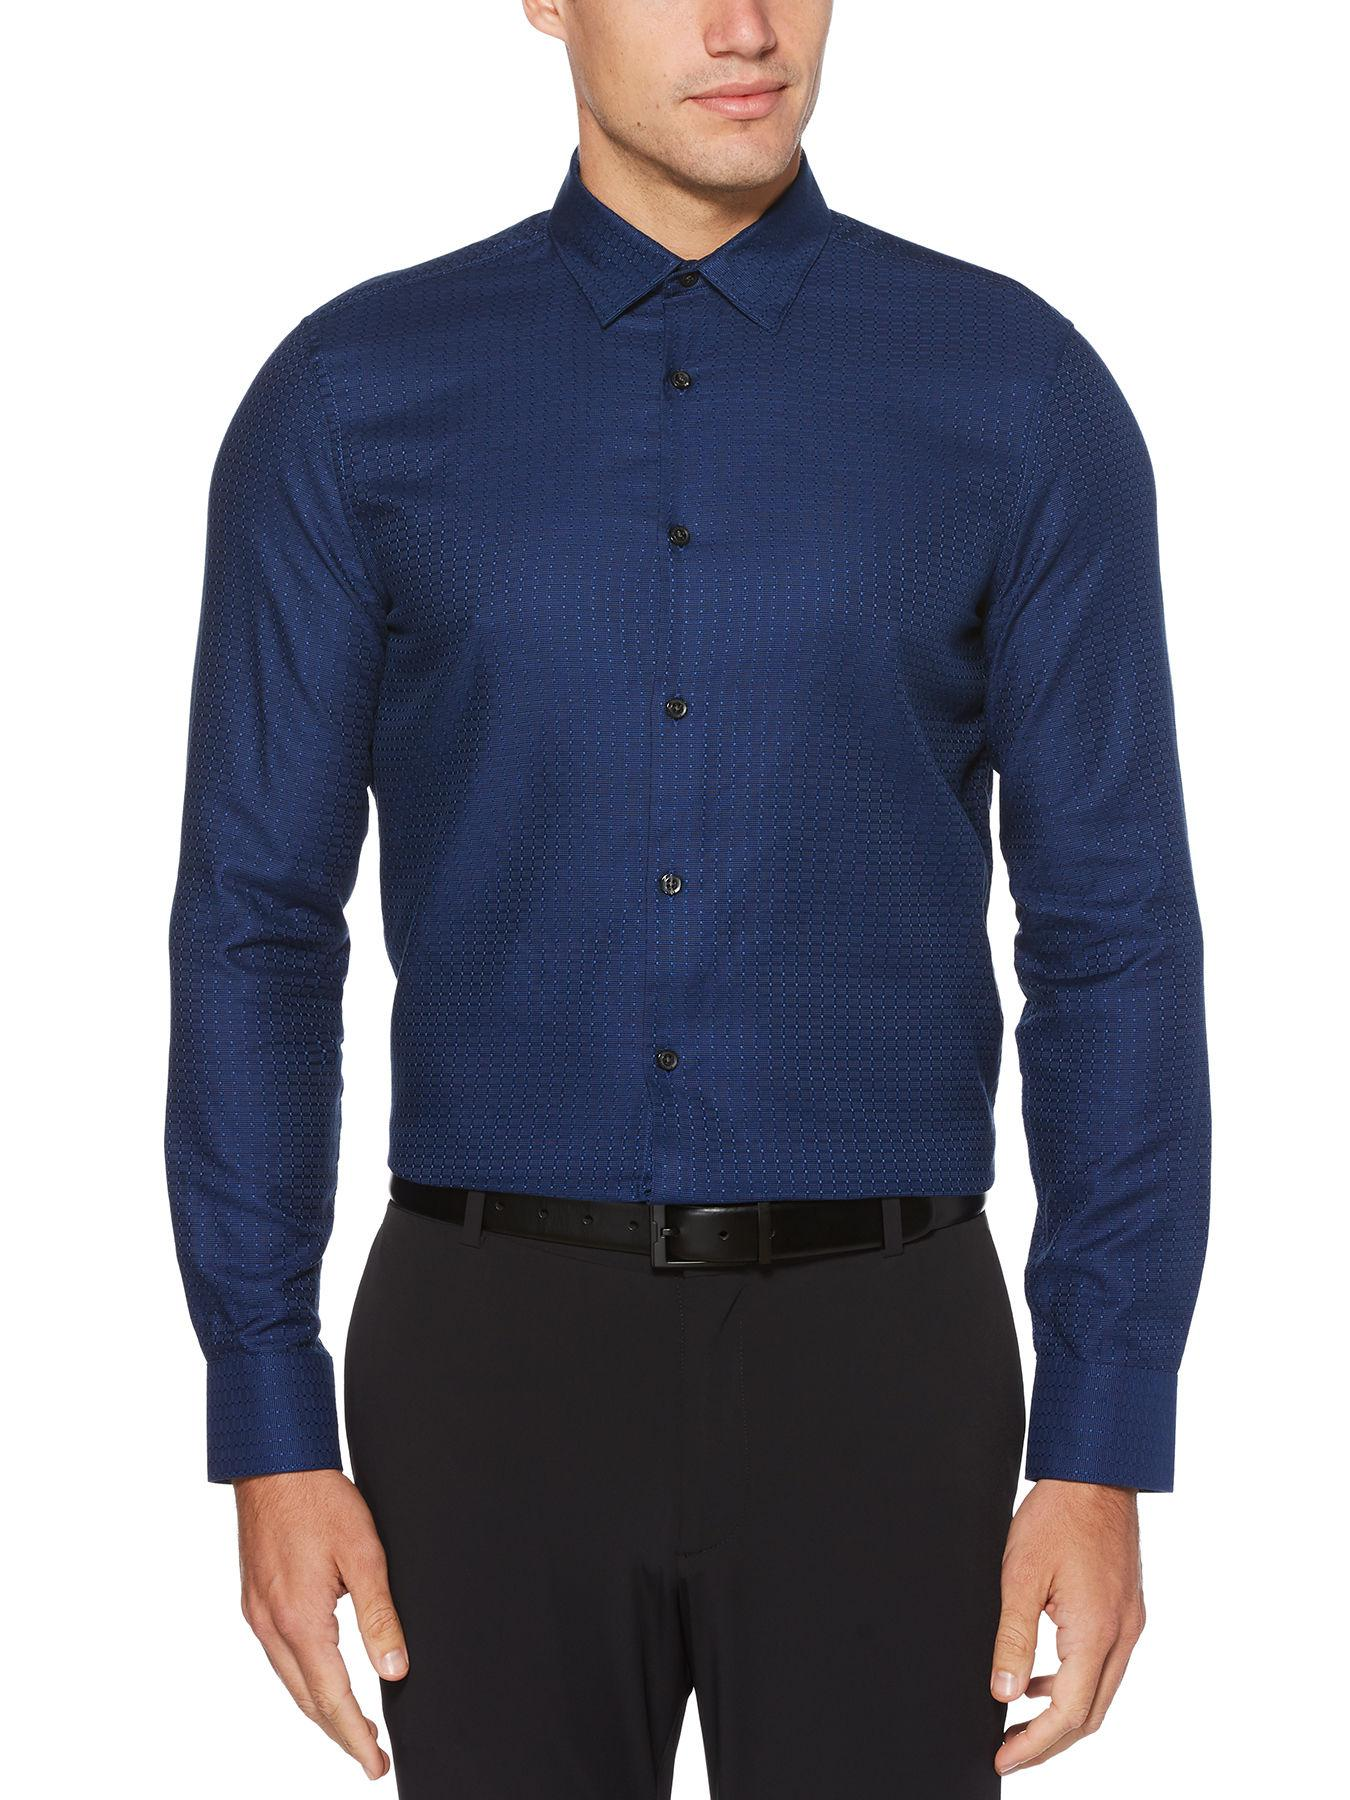 a73d62fe53d6 Lyst - Perry Ellis Slim Fit Check Shirt in Blue for Men